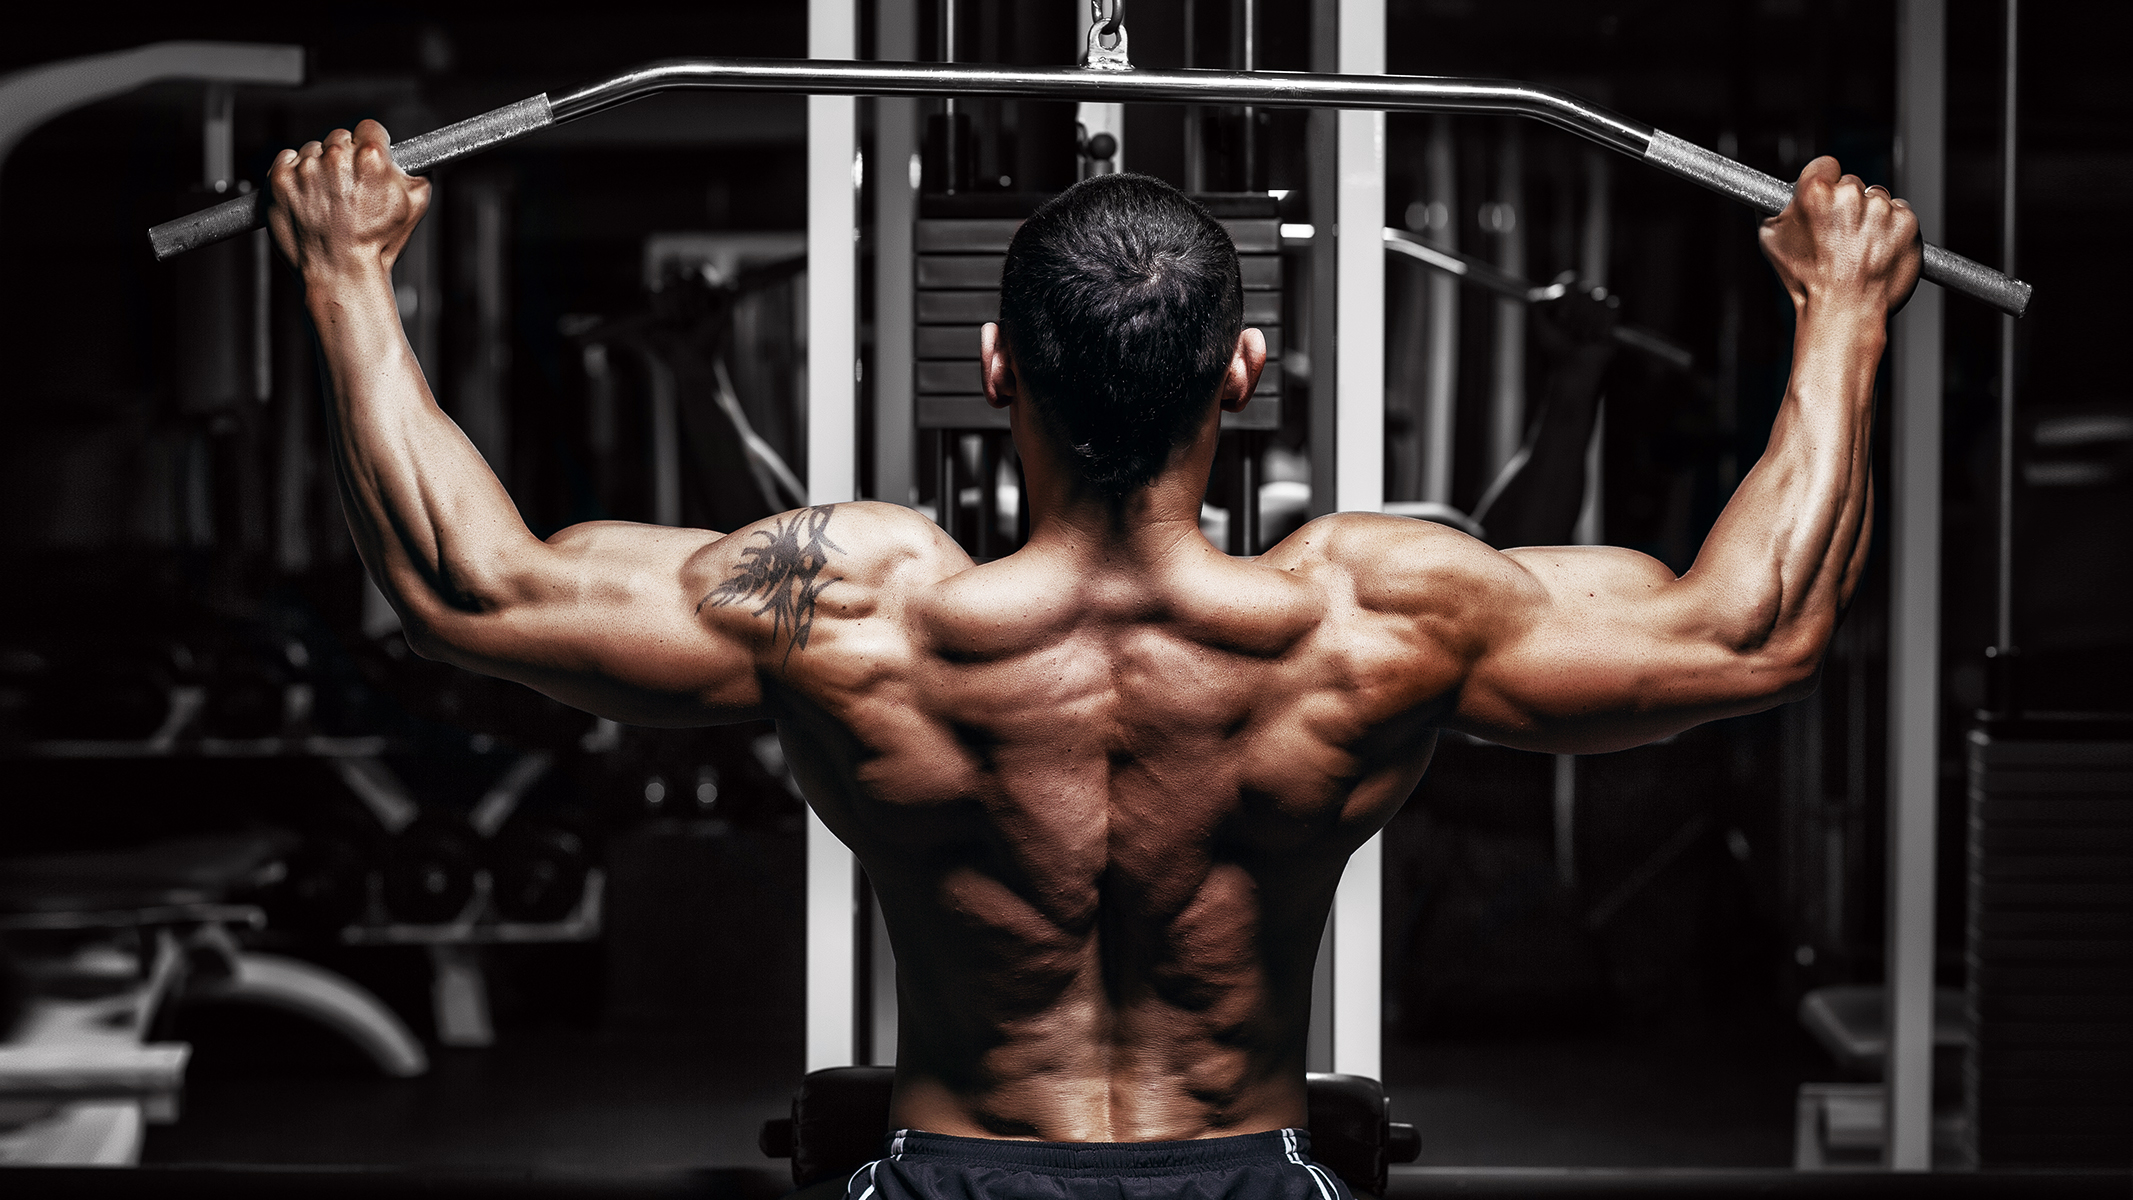 buy cheap steroids in usa